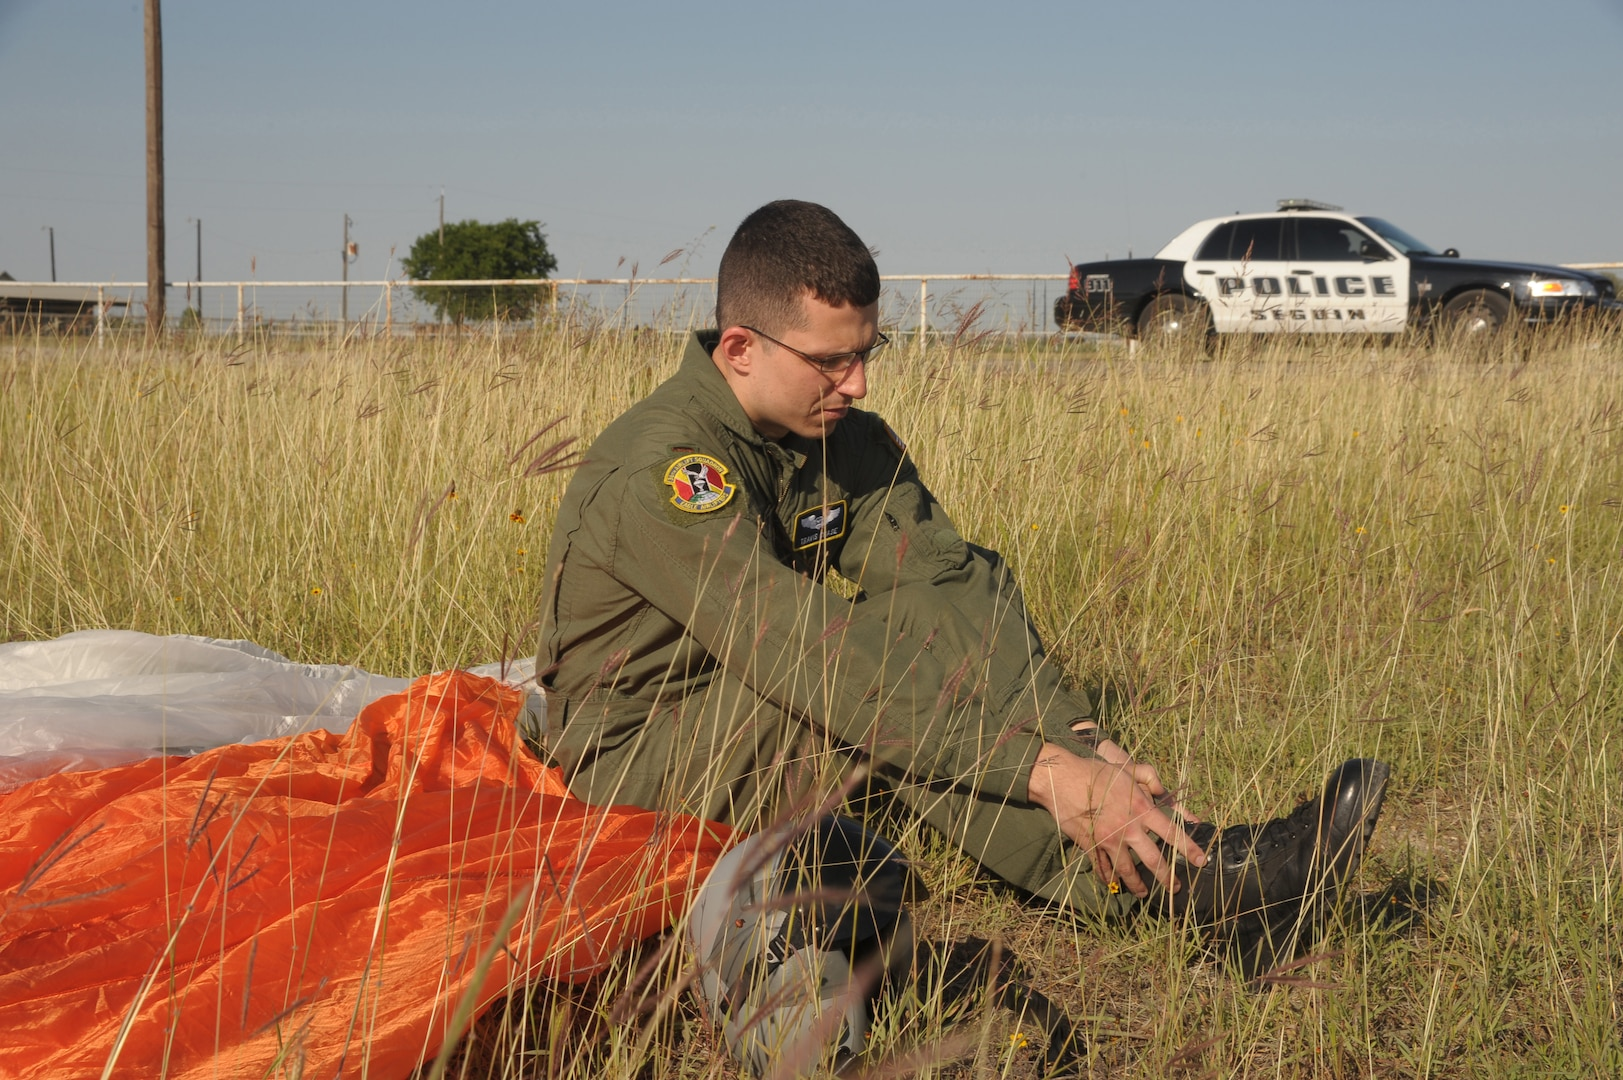 2nd Lt Travis Chase, 12th Operations Support Squadron,  await for medical assistance May 17, during an exercise.  The exercise, which involved response forces from Seguin, Texas, and Randolph Air Force Base, Texas, allowed and opportunity to train and prepare personnel for real world emergencies. (U.S. Air Force photo/Joel Martinez) (released)